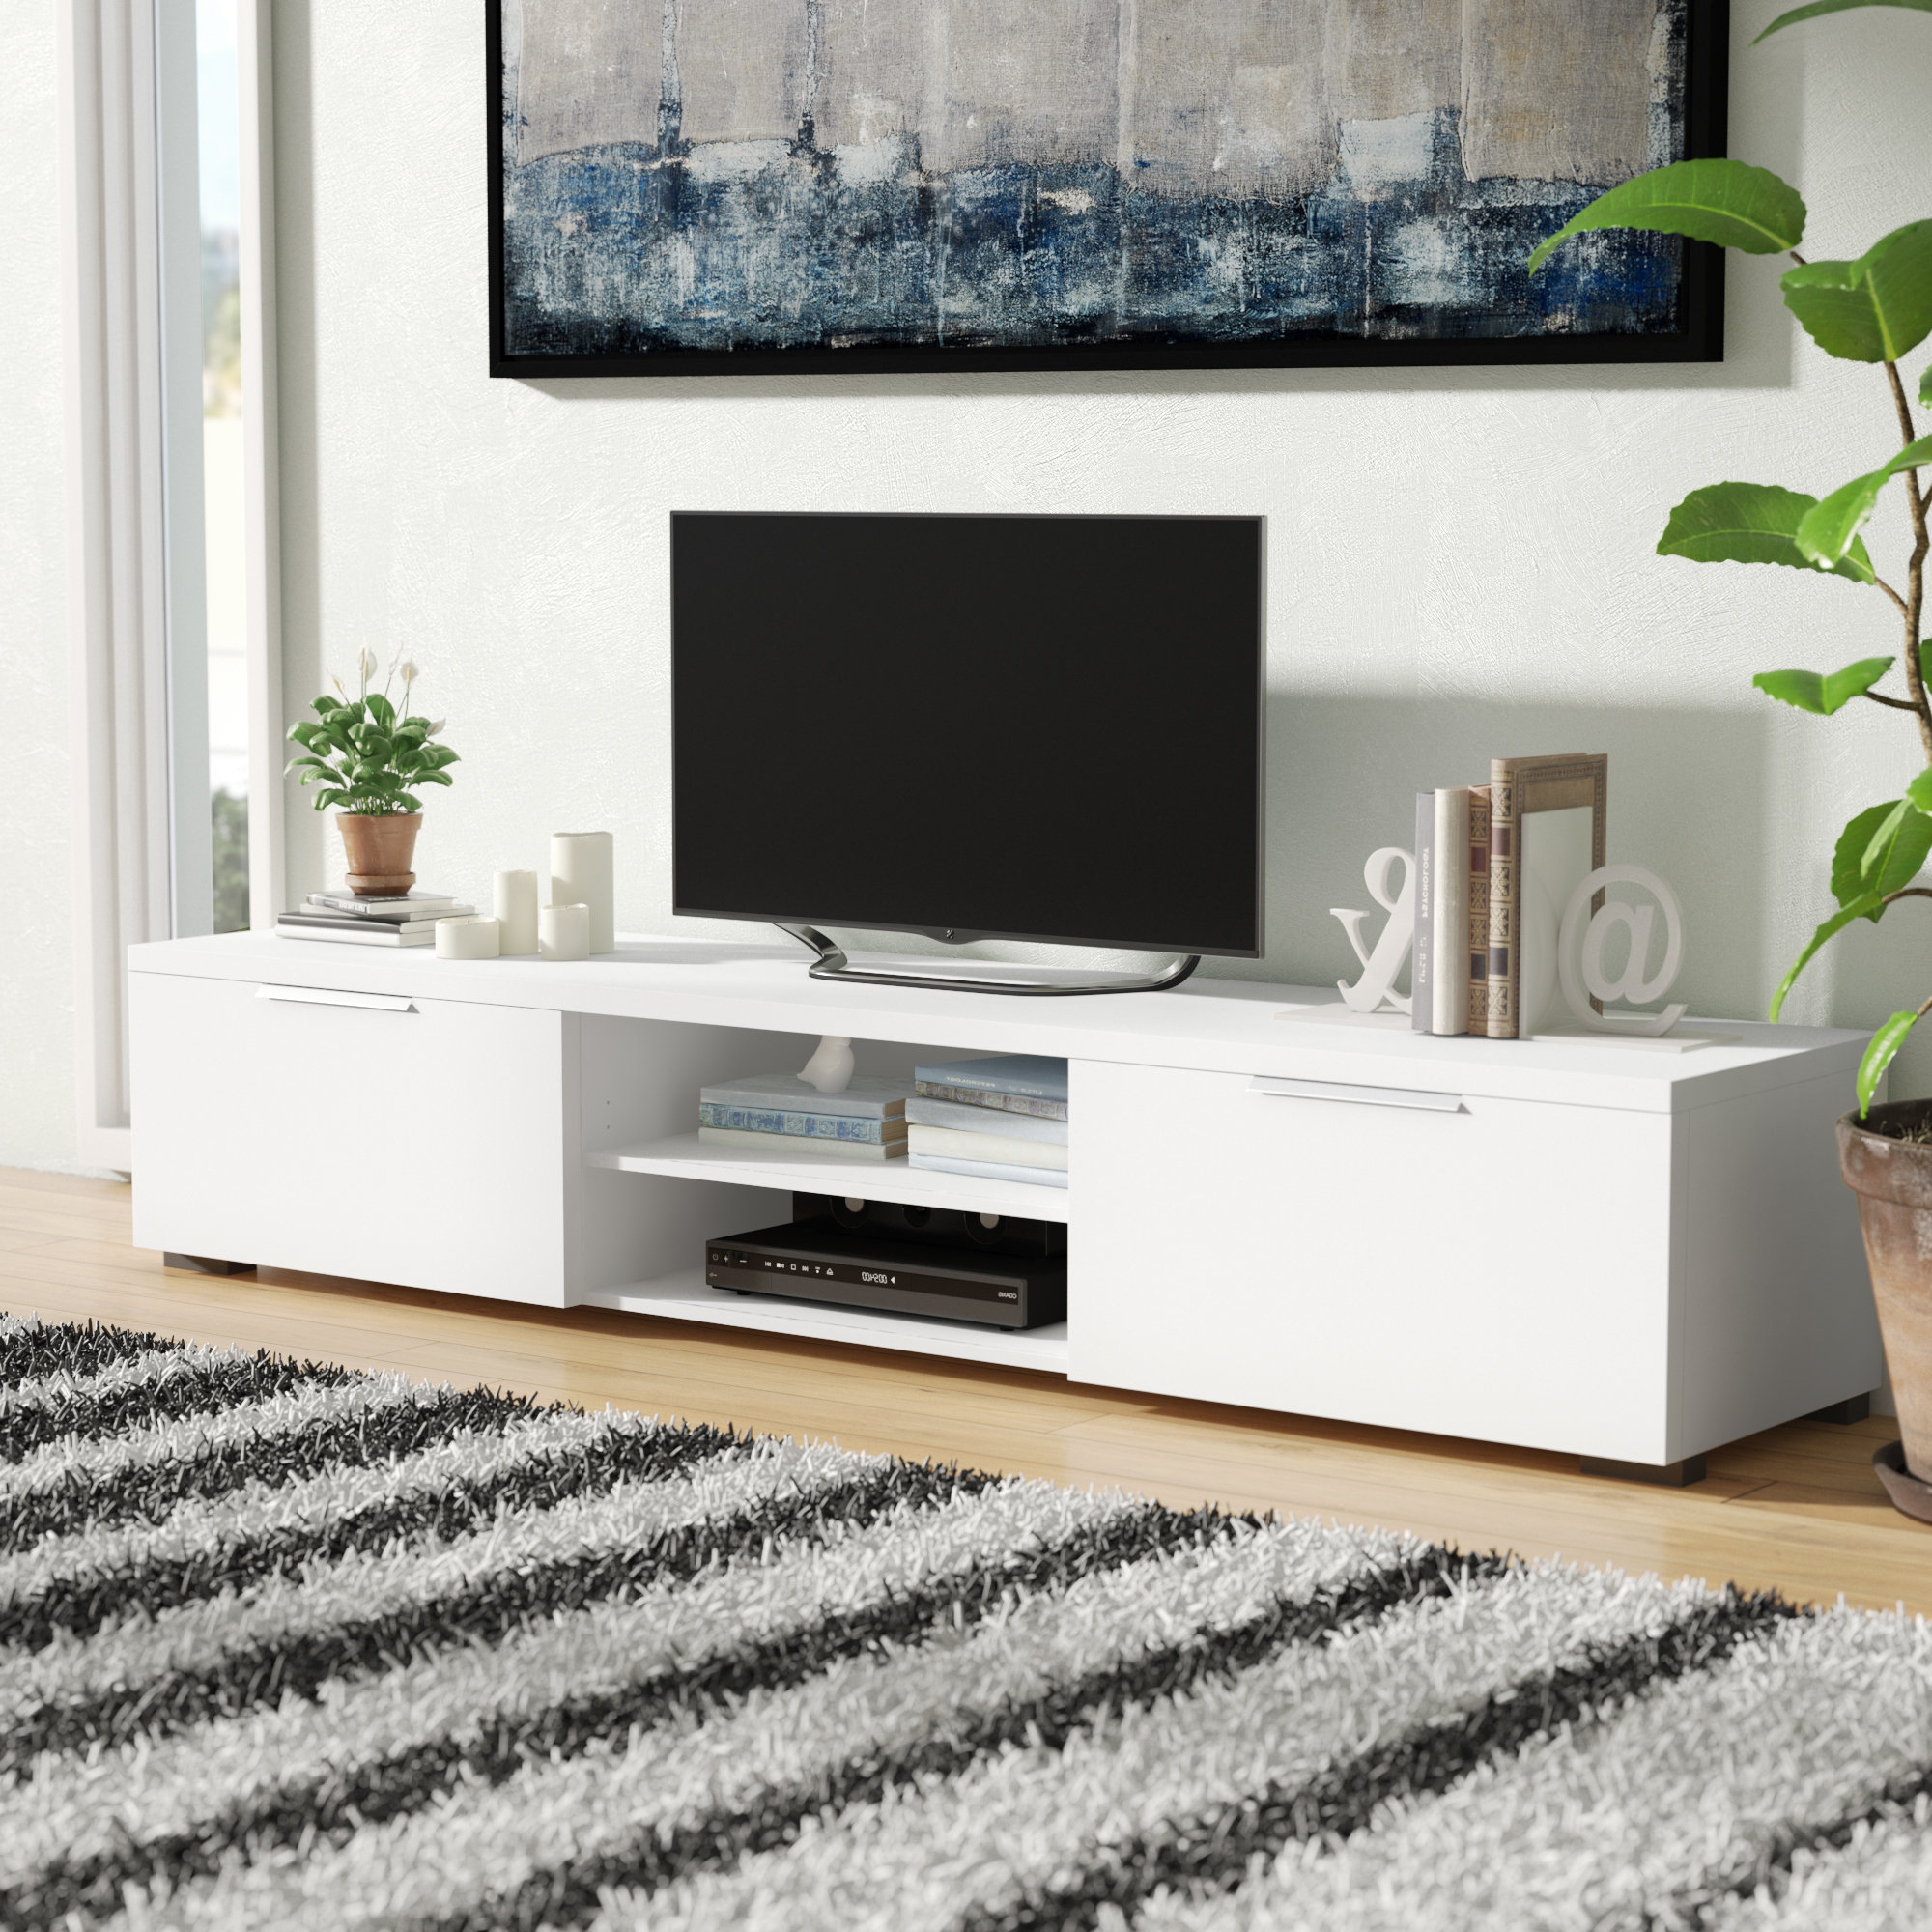 Tv Stand For 75 Inch Tv | Wayfair Pertaining To Laurent 70 Inch Tv Stands (View 18 of 20)